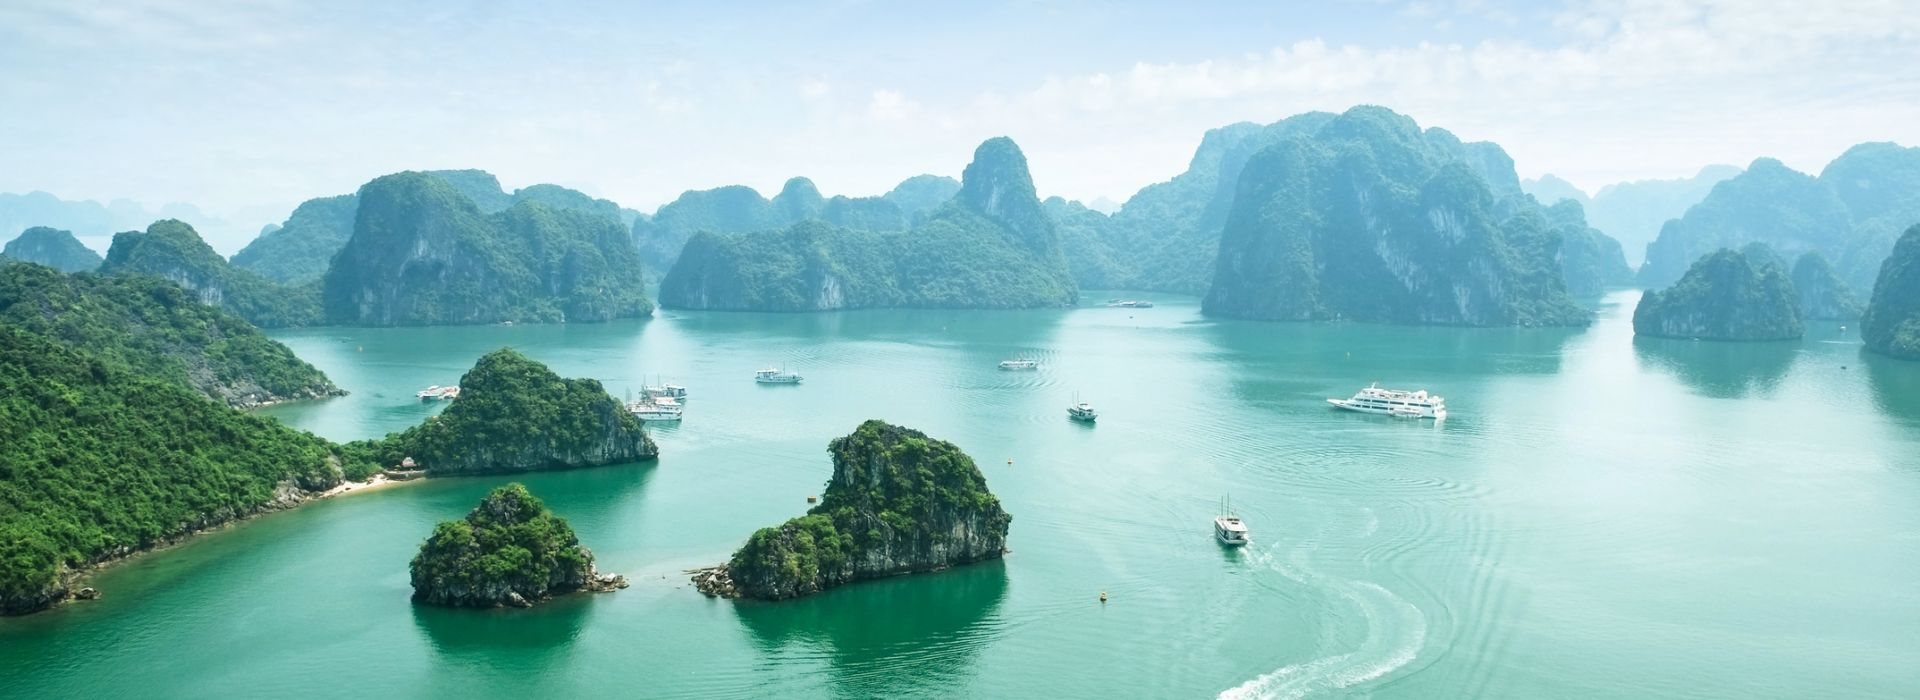 Sailing, yachting and motor boating Tours in Hanoi